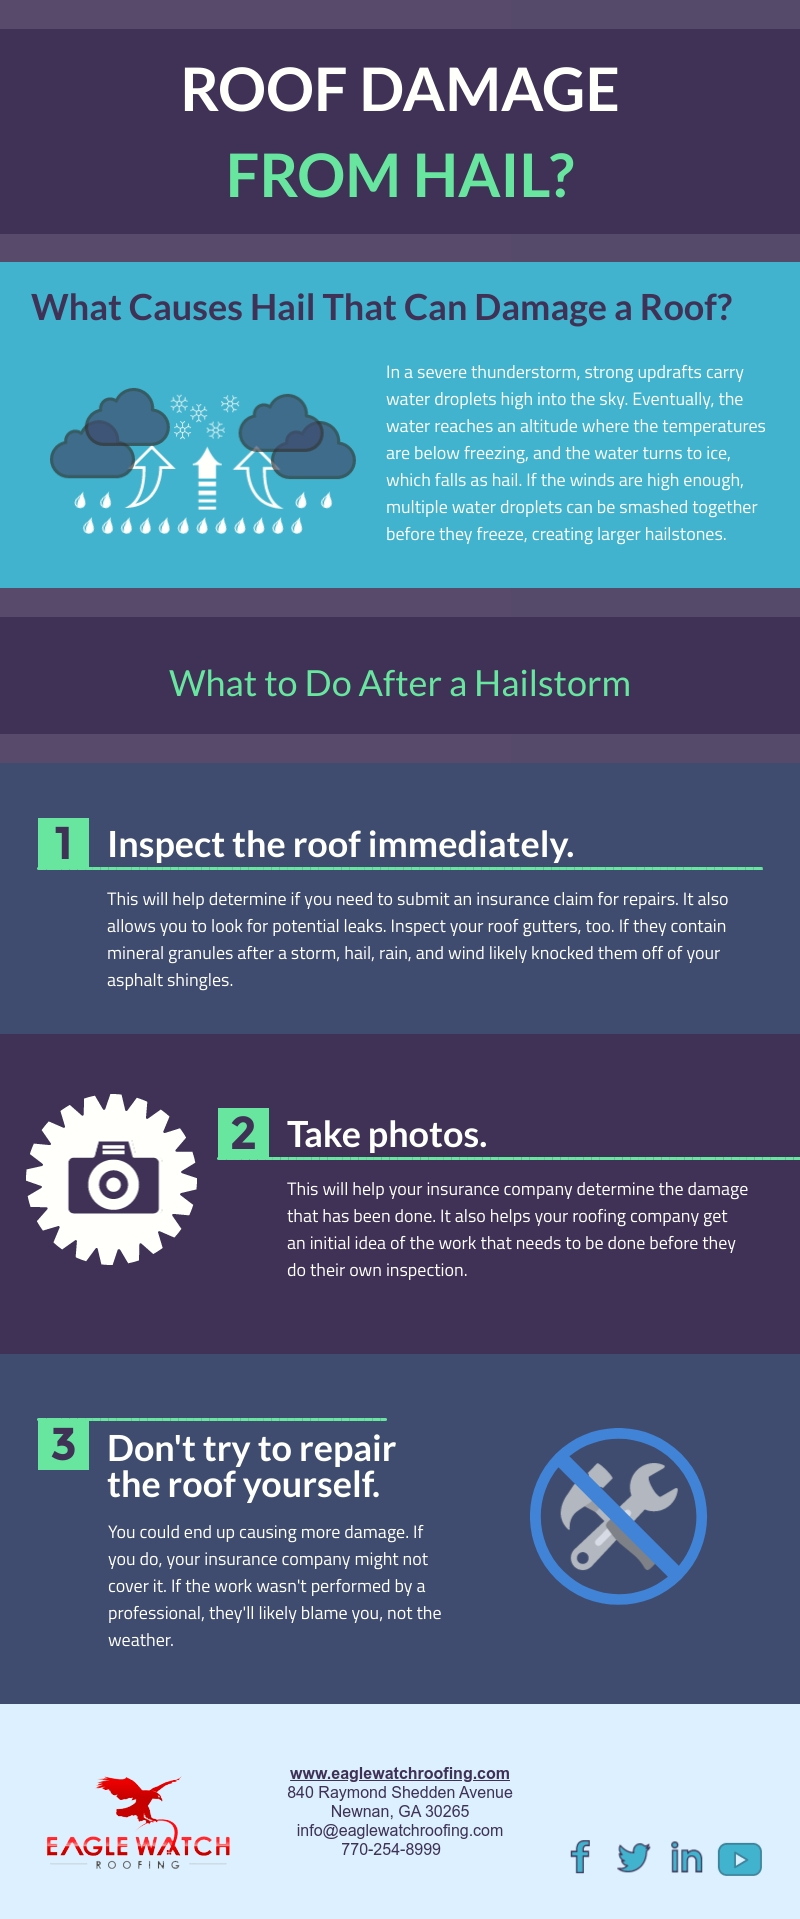 Roof Damage from Hail [infographic]